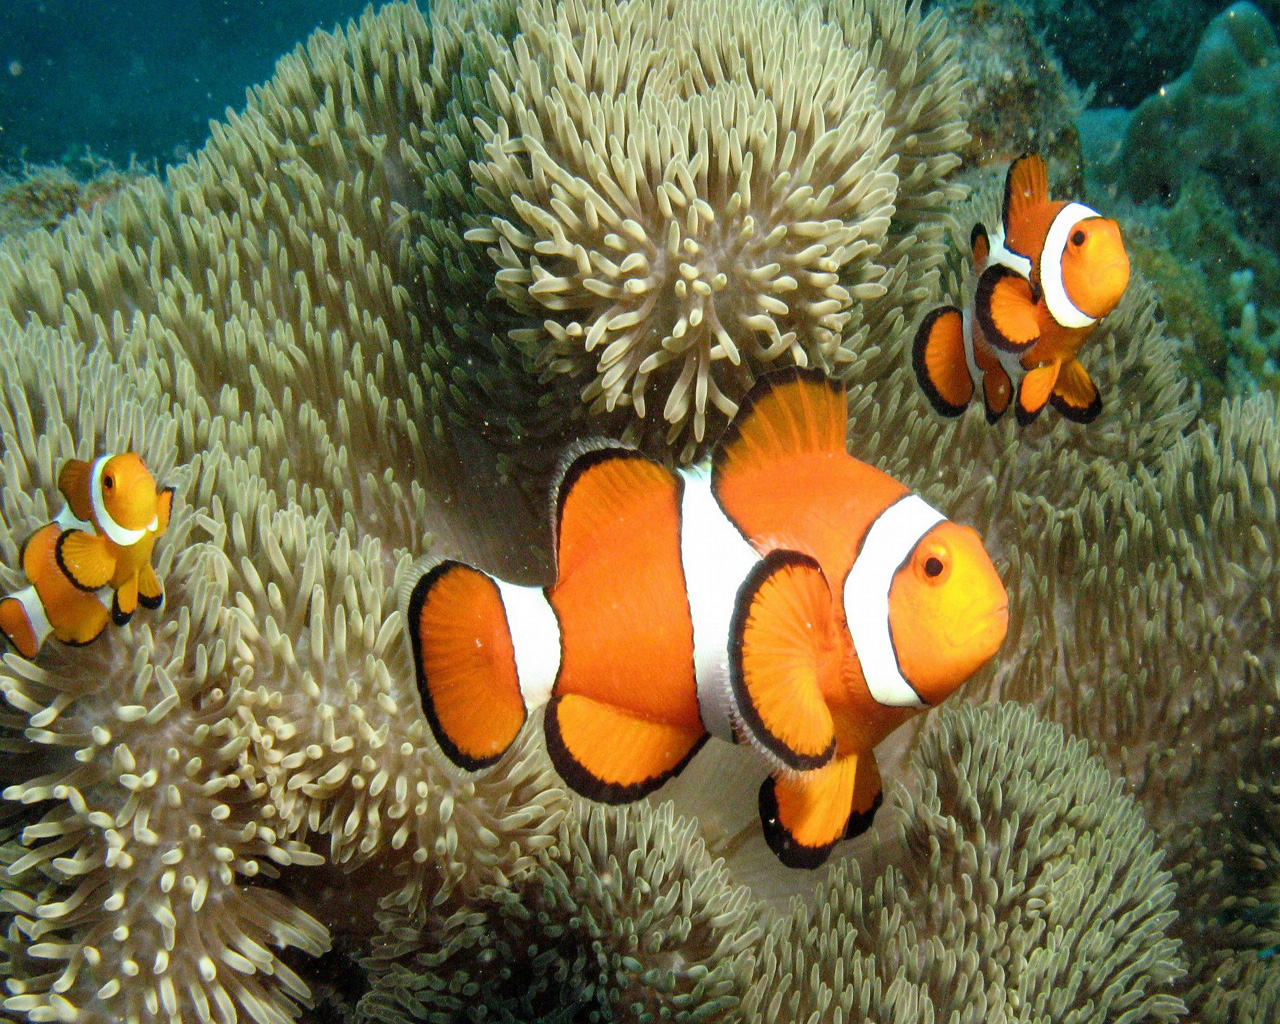 Cute Clown Fish Wallpaper   1280x1024 iWallHD   Wallpaper HD 1280x1024